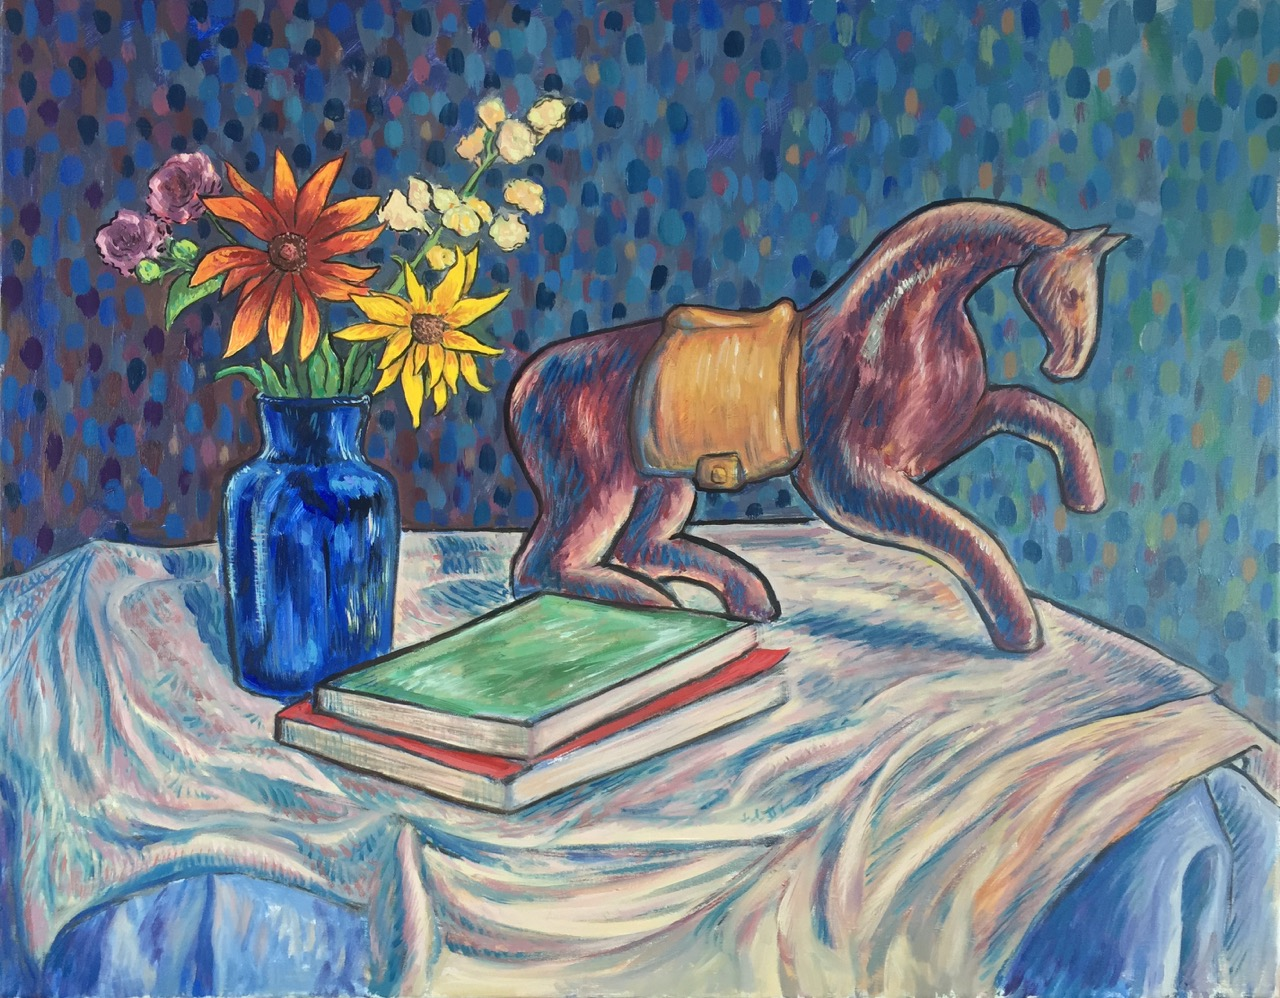 Still Life With Horse (Still Life in Synthetism)